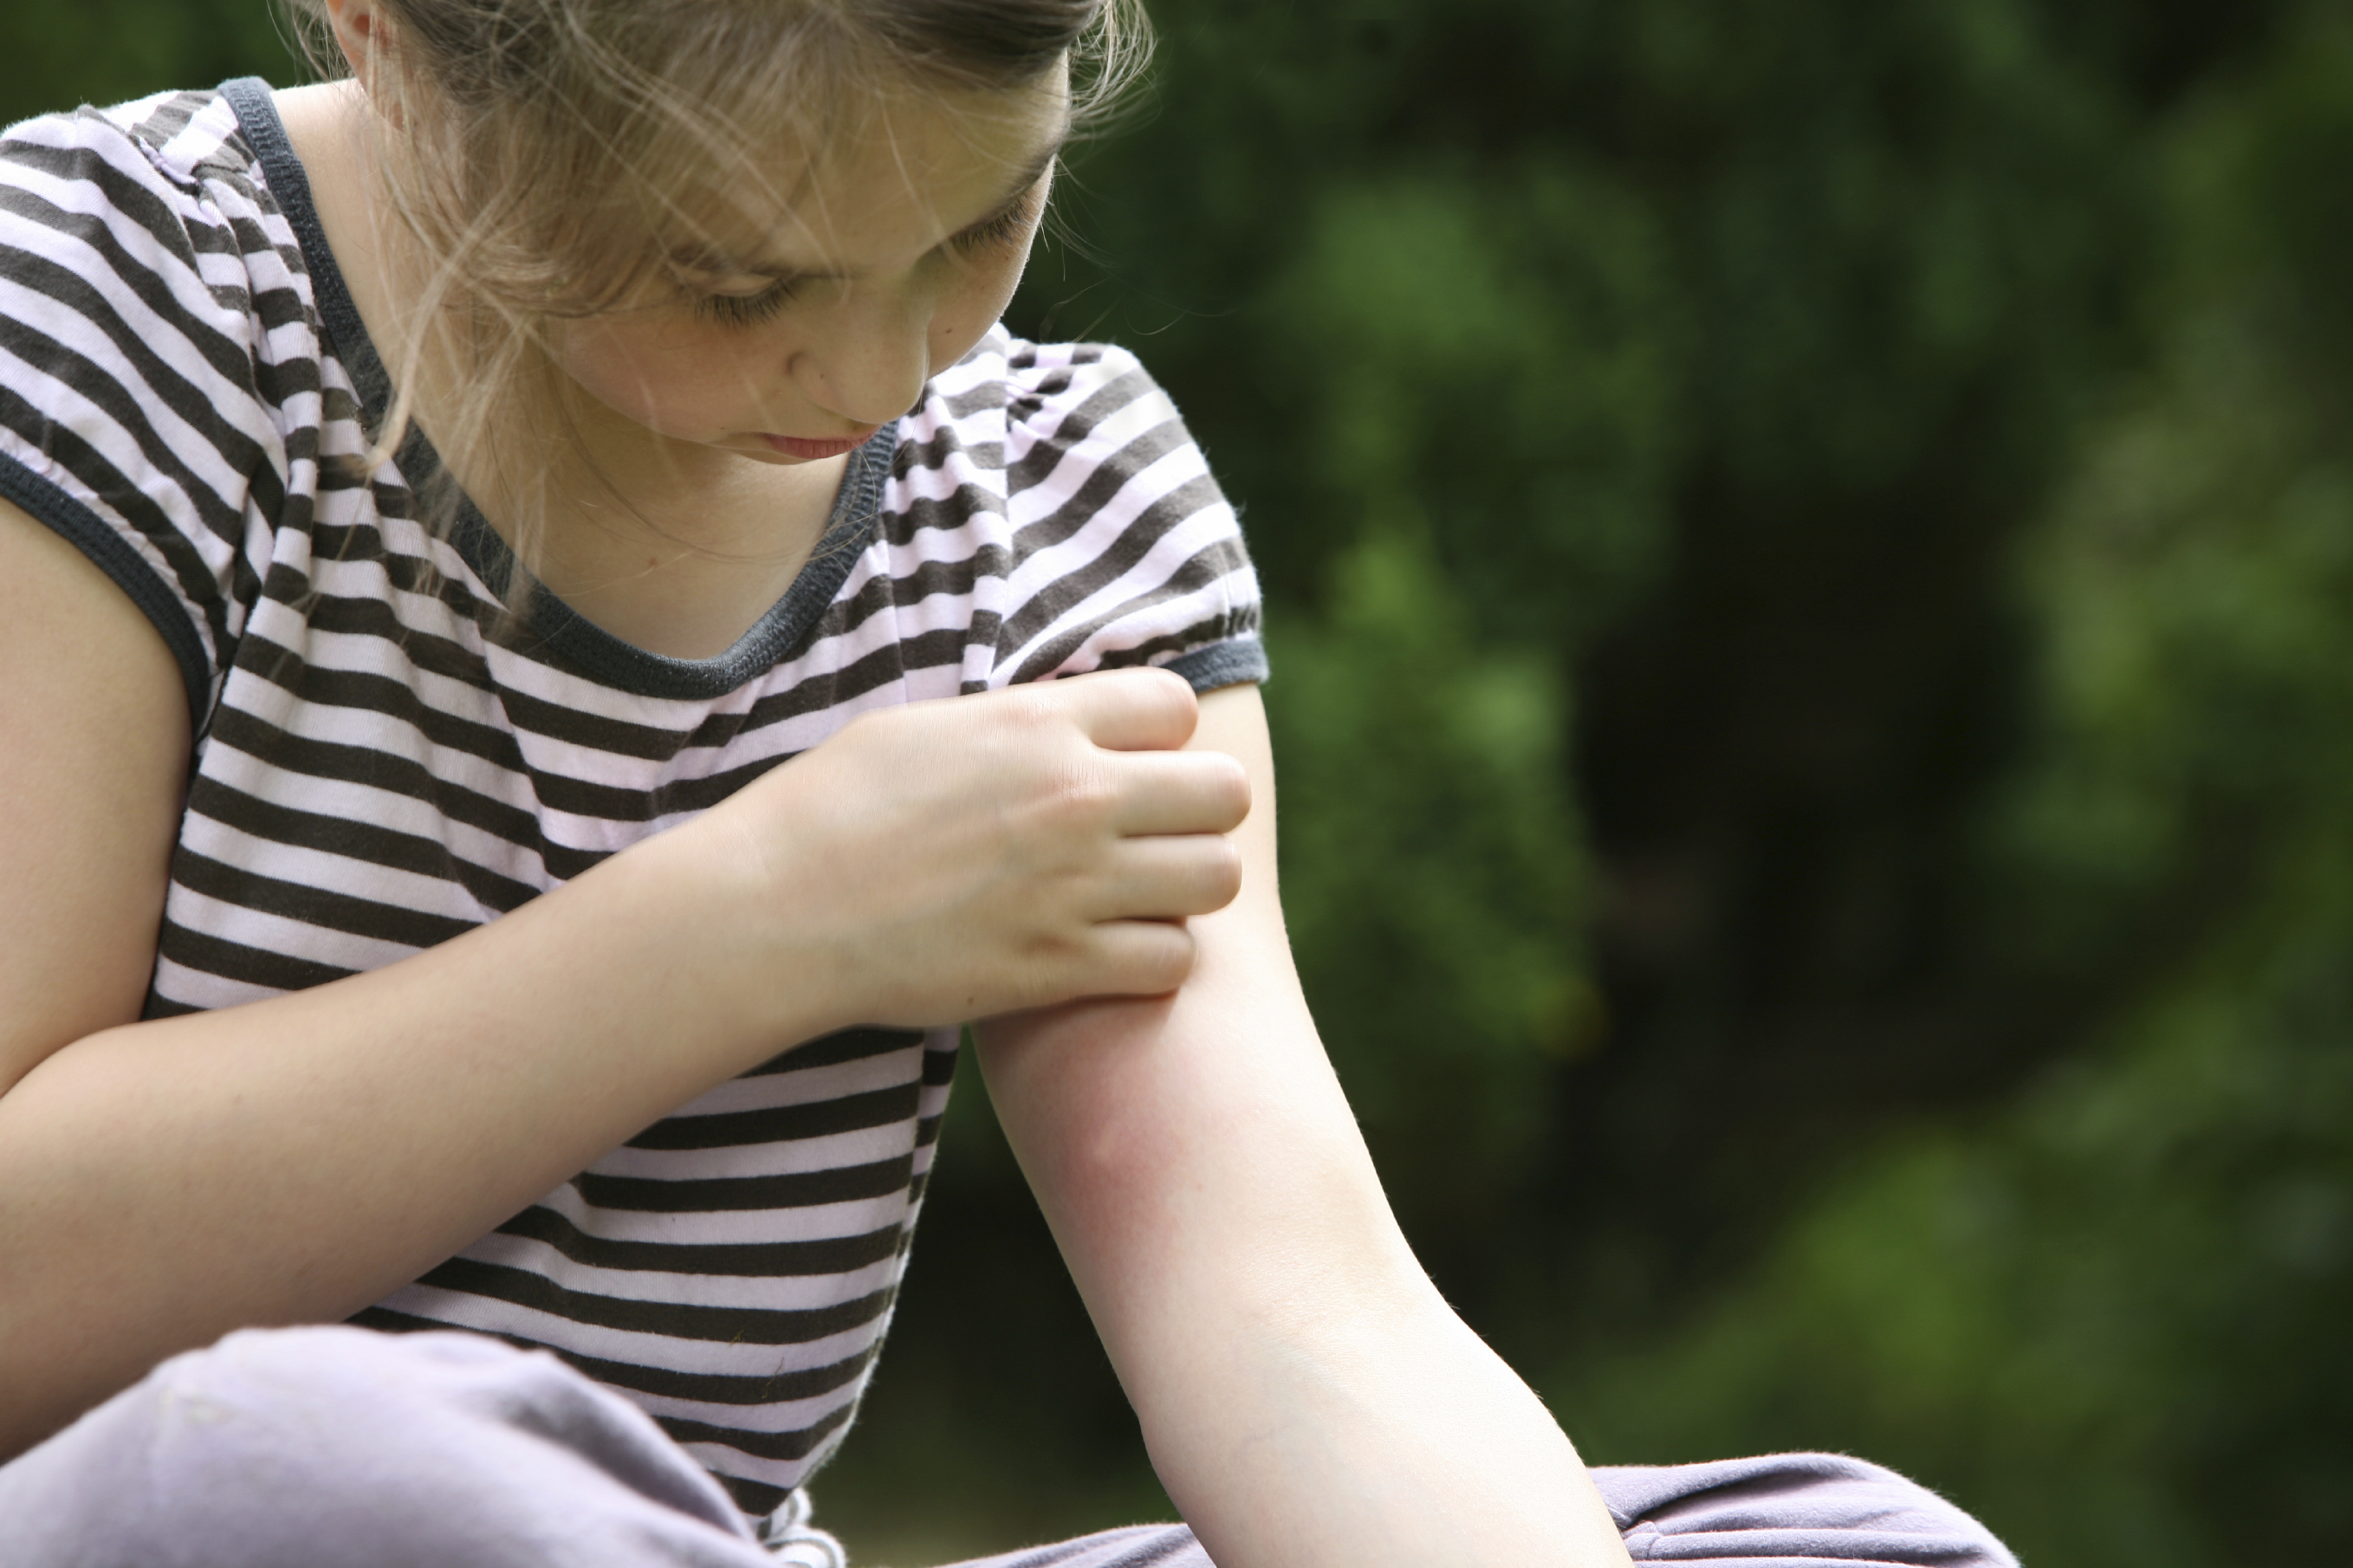 Why Do Mosquito Bites Itch? Information on Mosquito Bites